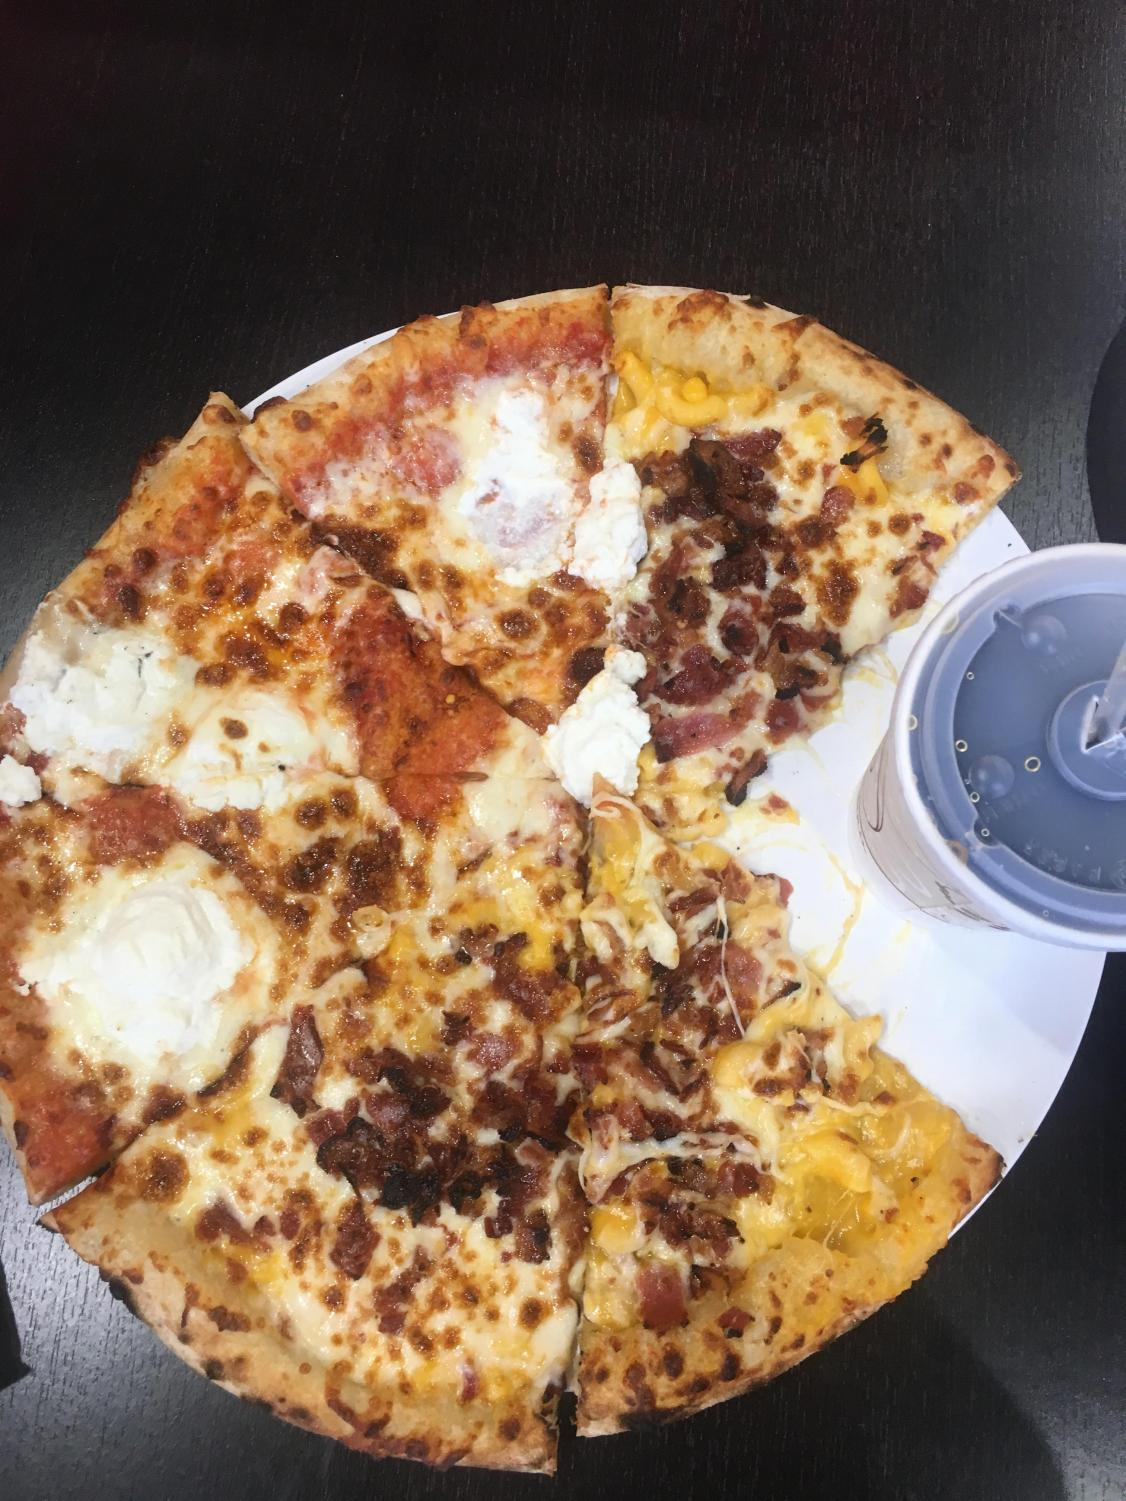 Half cheese, half bacon mac and cheese pizza with a side of coke from 1000 Degrees,  located on Mitchell Hammock.